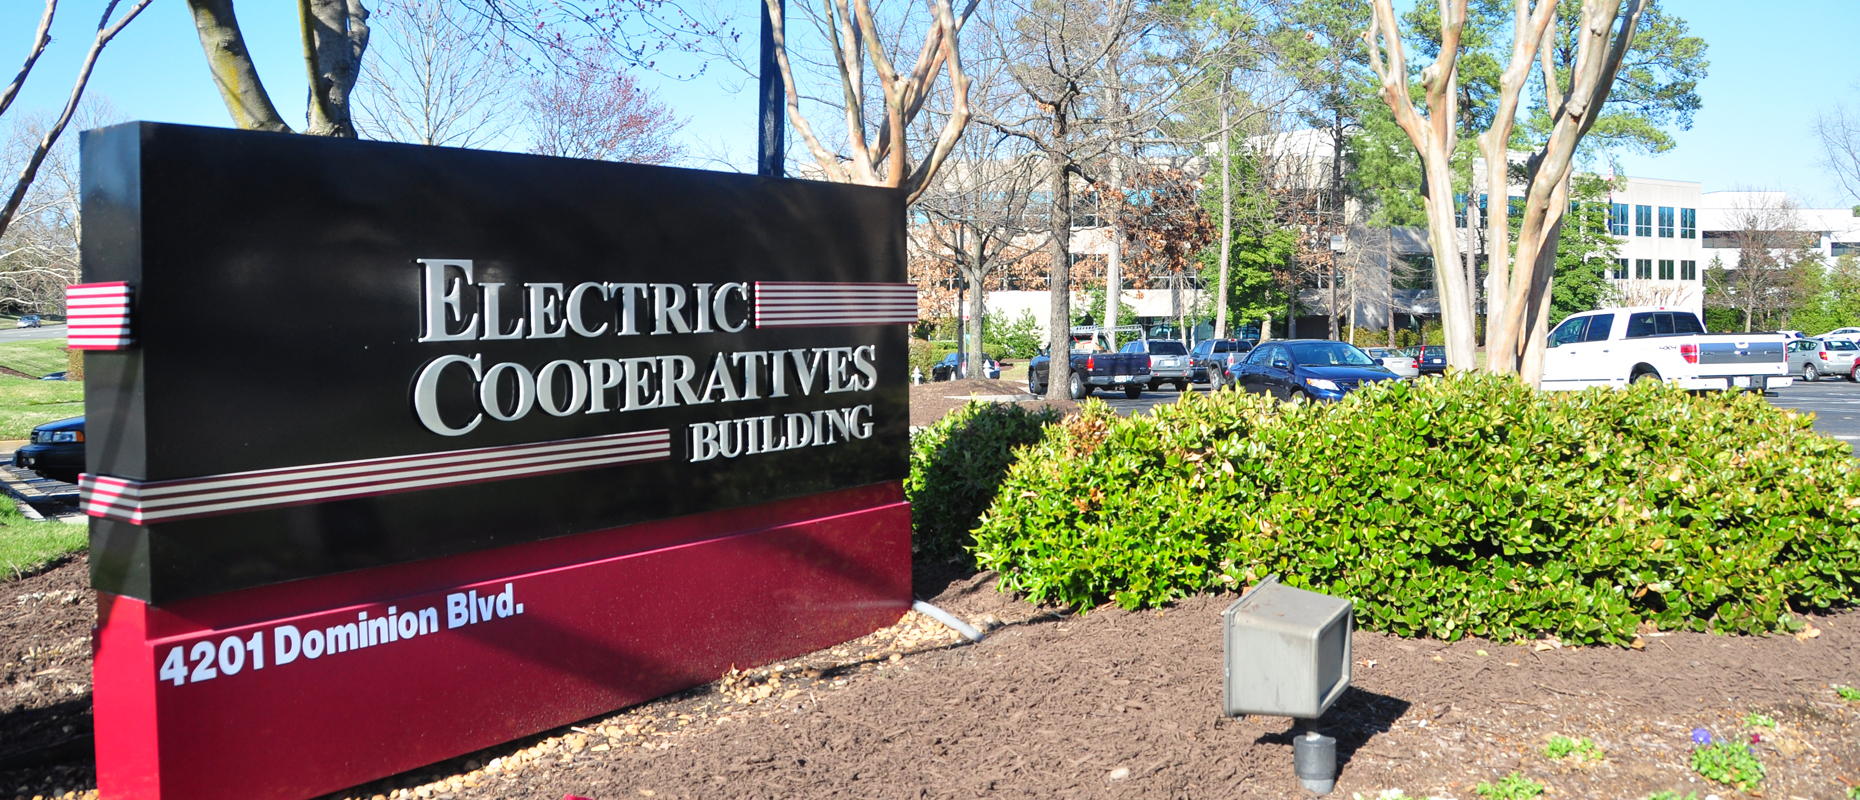 Electric Cooperatives Building Sign